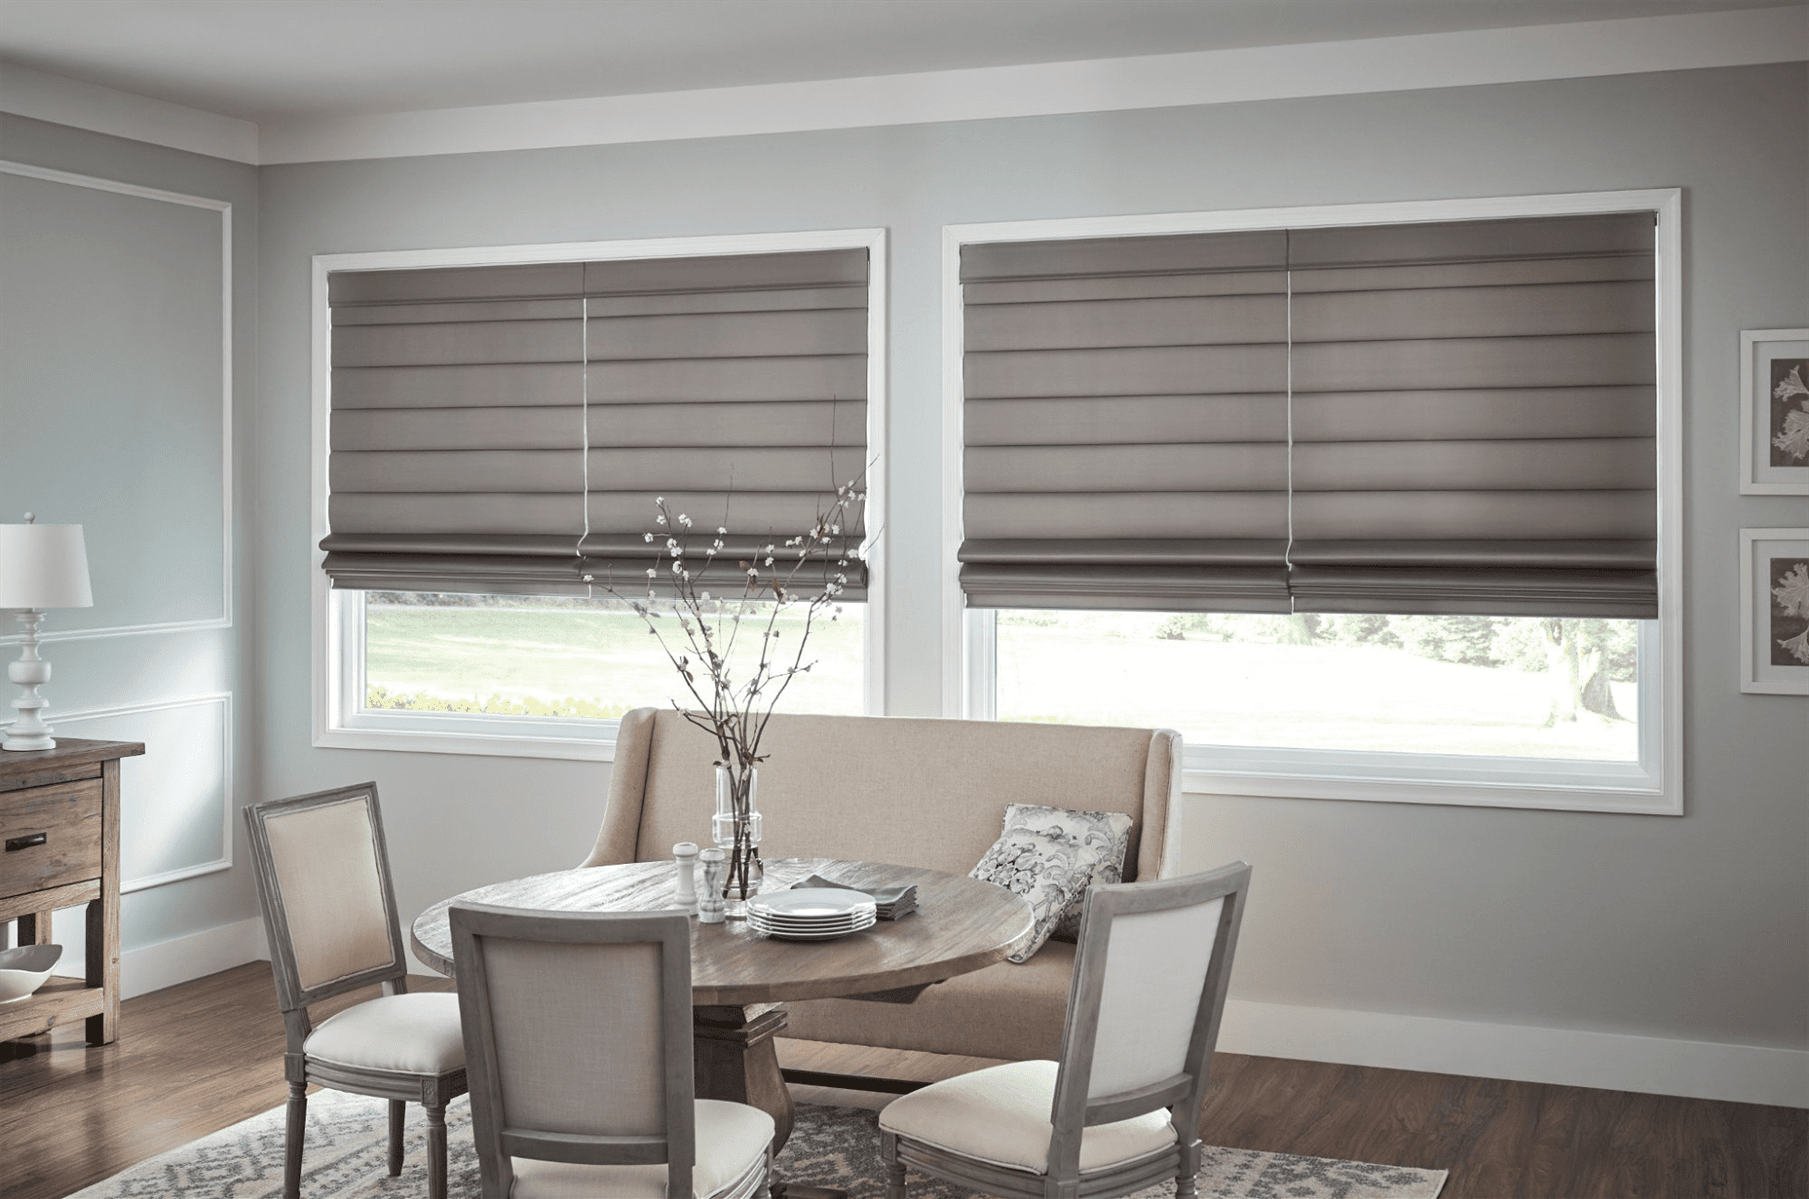 Dining Room showcasing 2 Windows with Shades